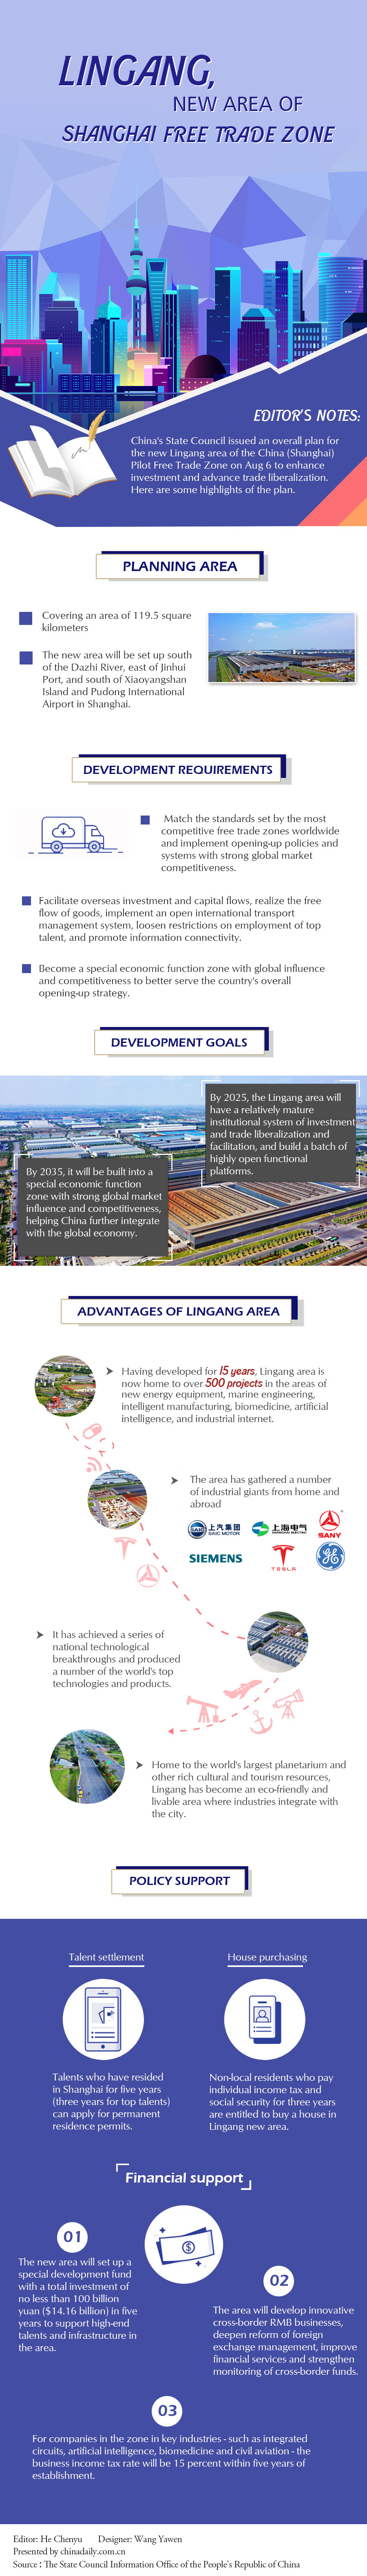 Lingang: New Area of Shanghai Free Trade Zone-学霸时光机